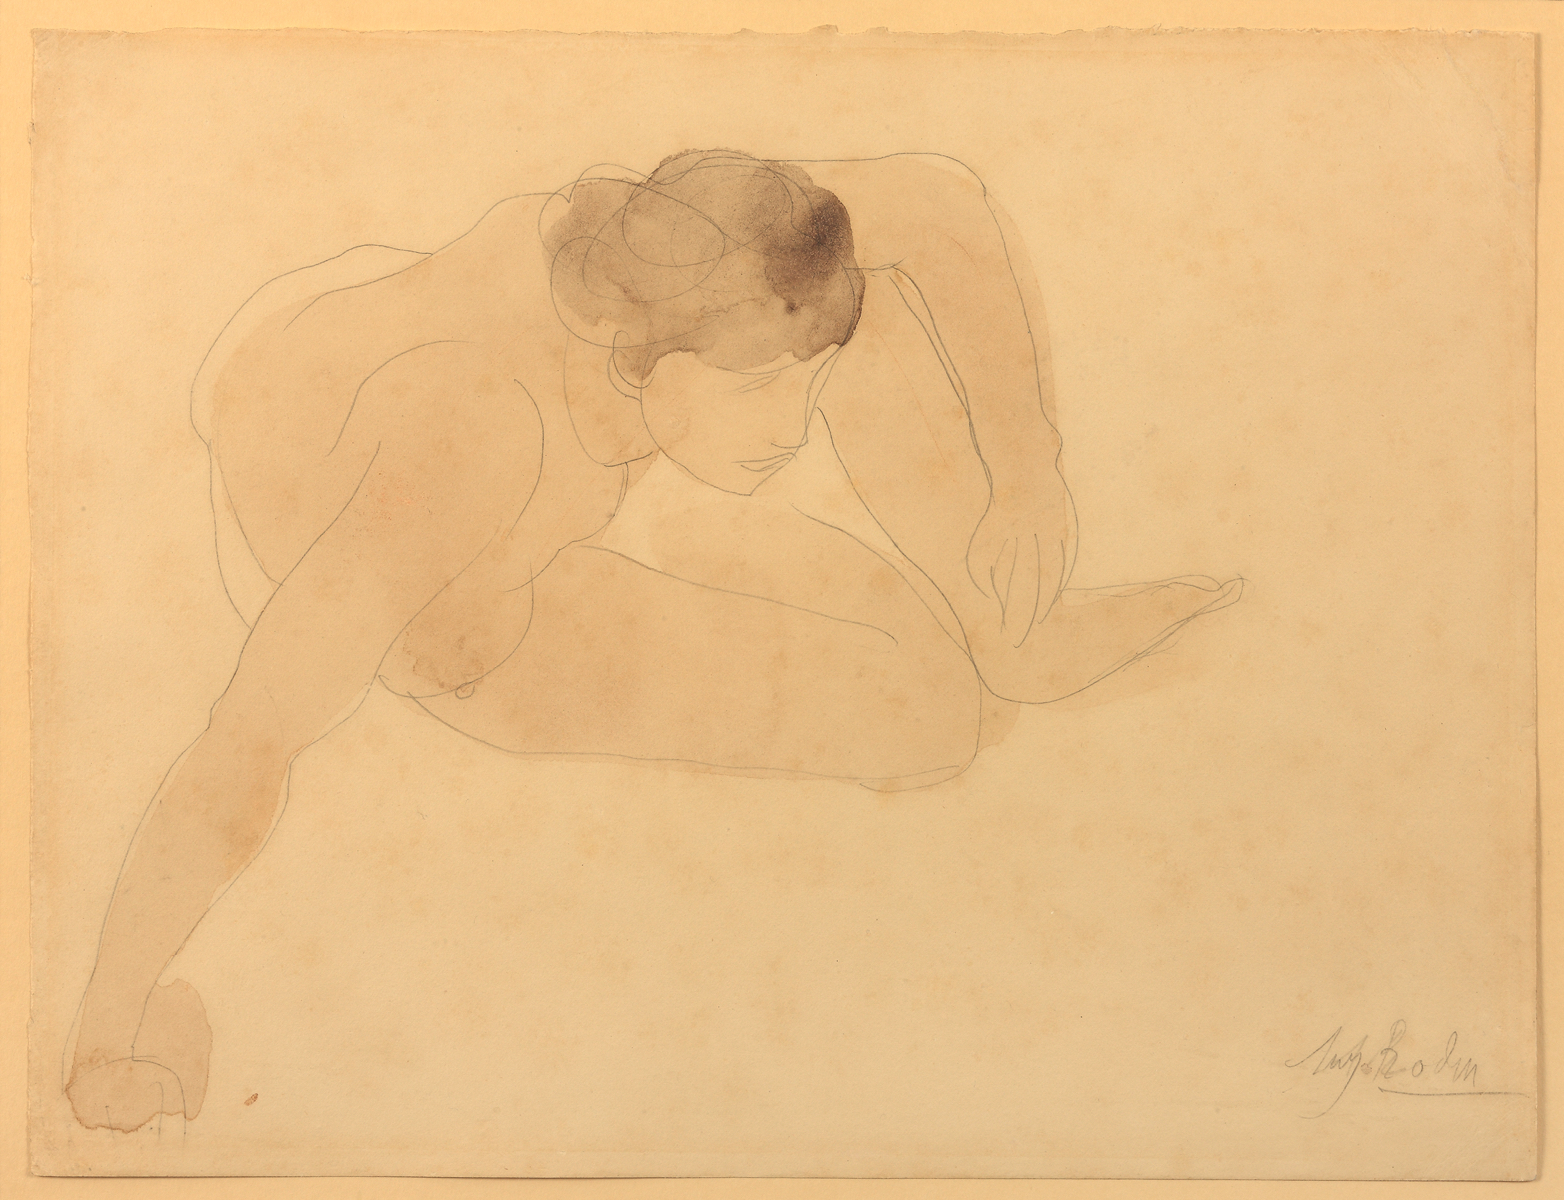 Auguste RODIN (1840-1917)Graphite and watercolor on wove paper mounted to original board25 x 32.5 cmMonogrammed in graphite at the bottom right: 'A. R.' and signed over it: 'Aug. Rodin'